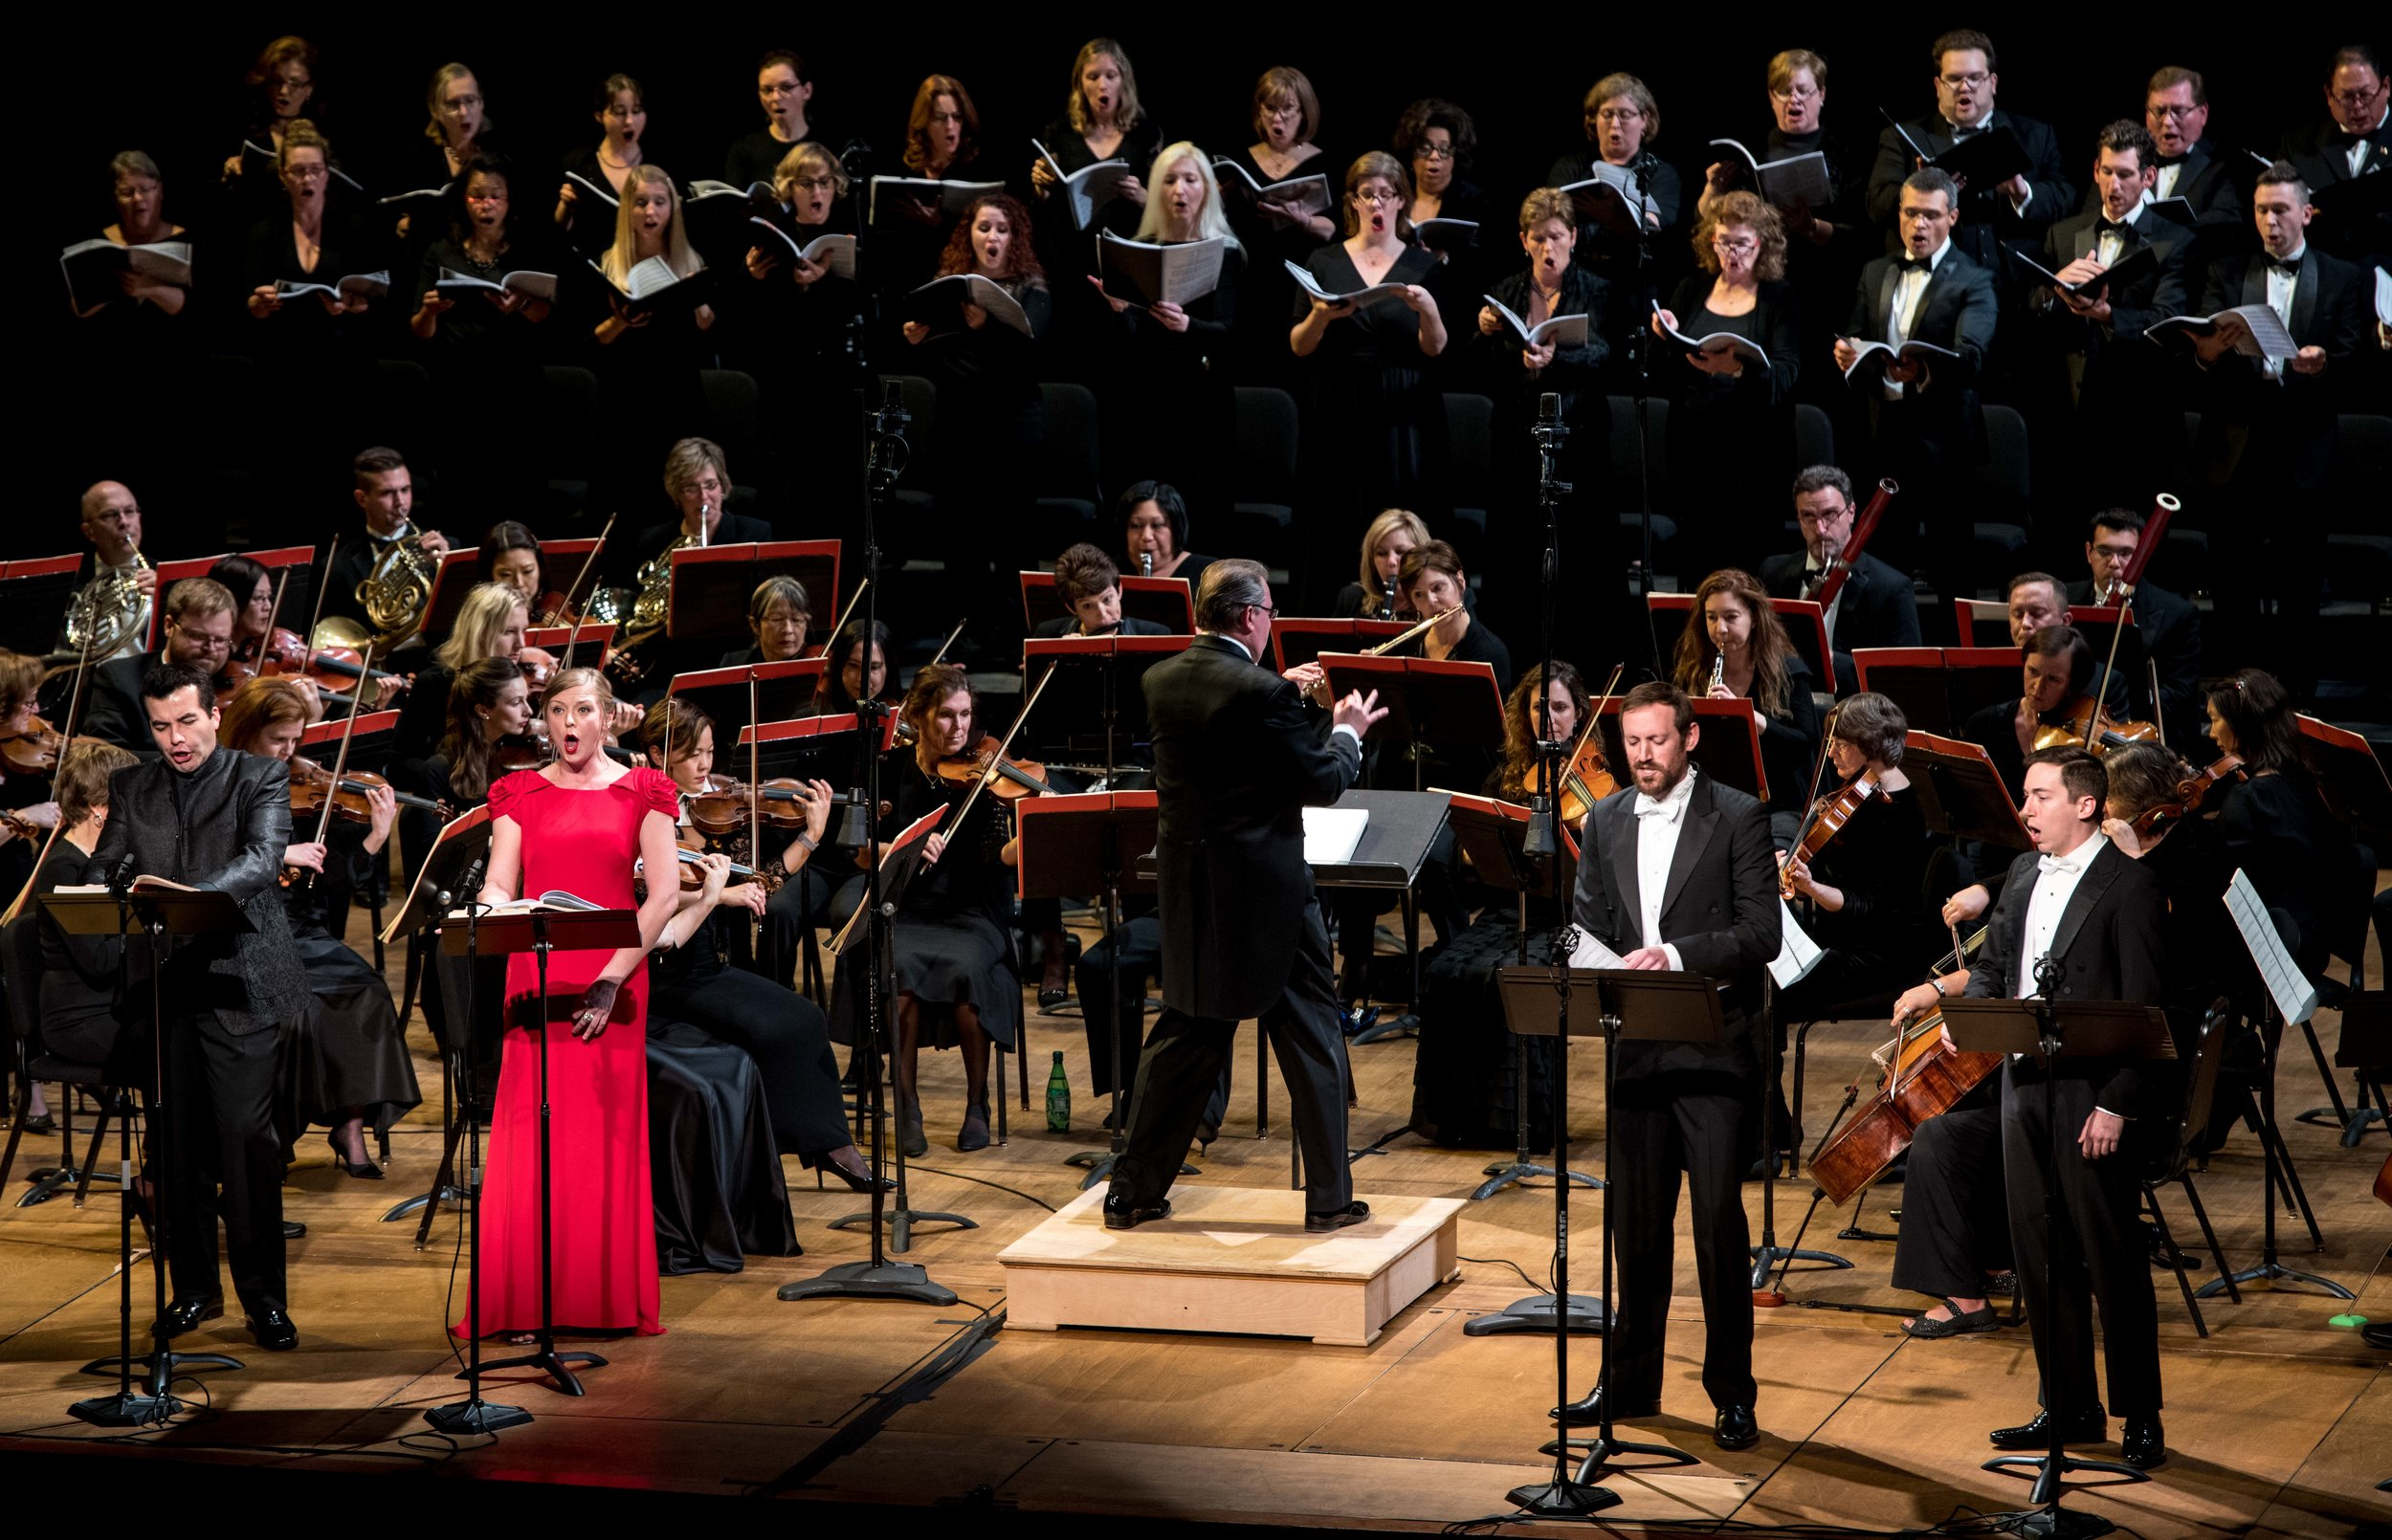 Javier Arrey as Valdeburgo, Corrie Stallings as Isoletta, Matthew Scollin as Montolino, Jonas Hacker as Osburgo, Conductor Antony Walker, and the WCO Orchestra and Chorus. Photo by Don Lassell; courtesy of Washington Concert Opera.